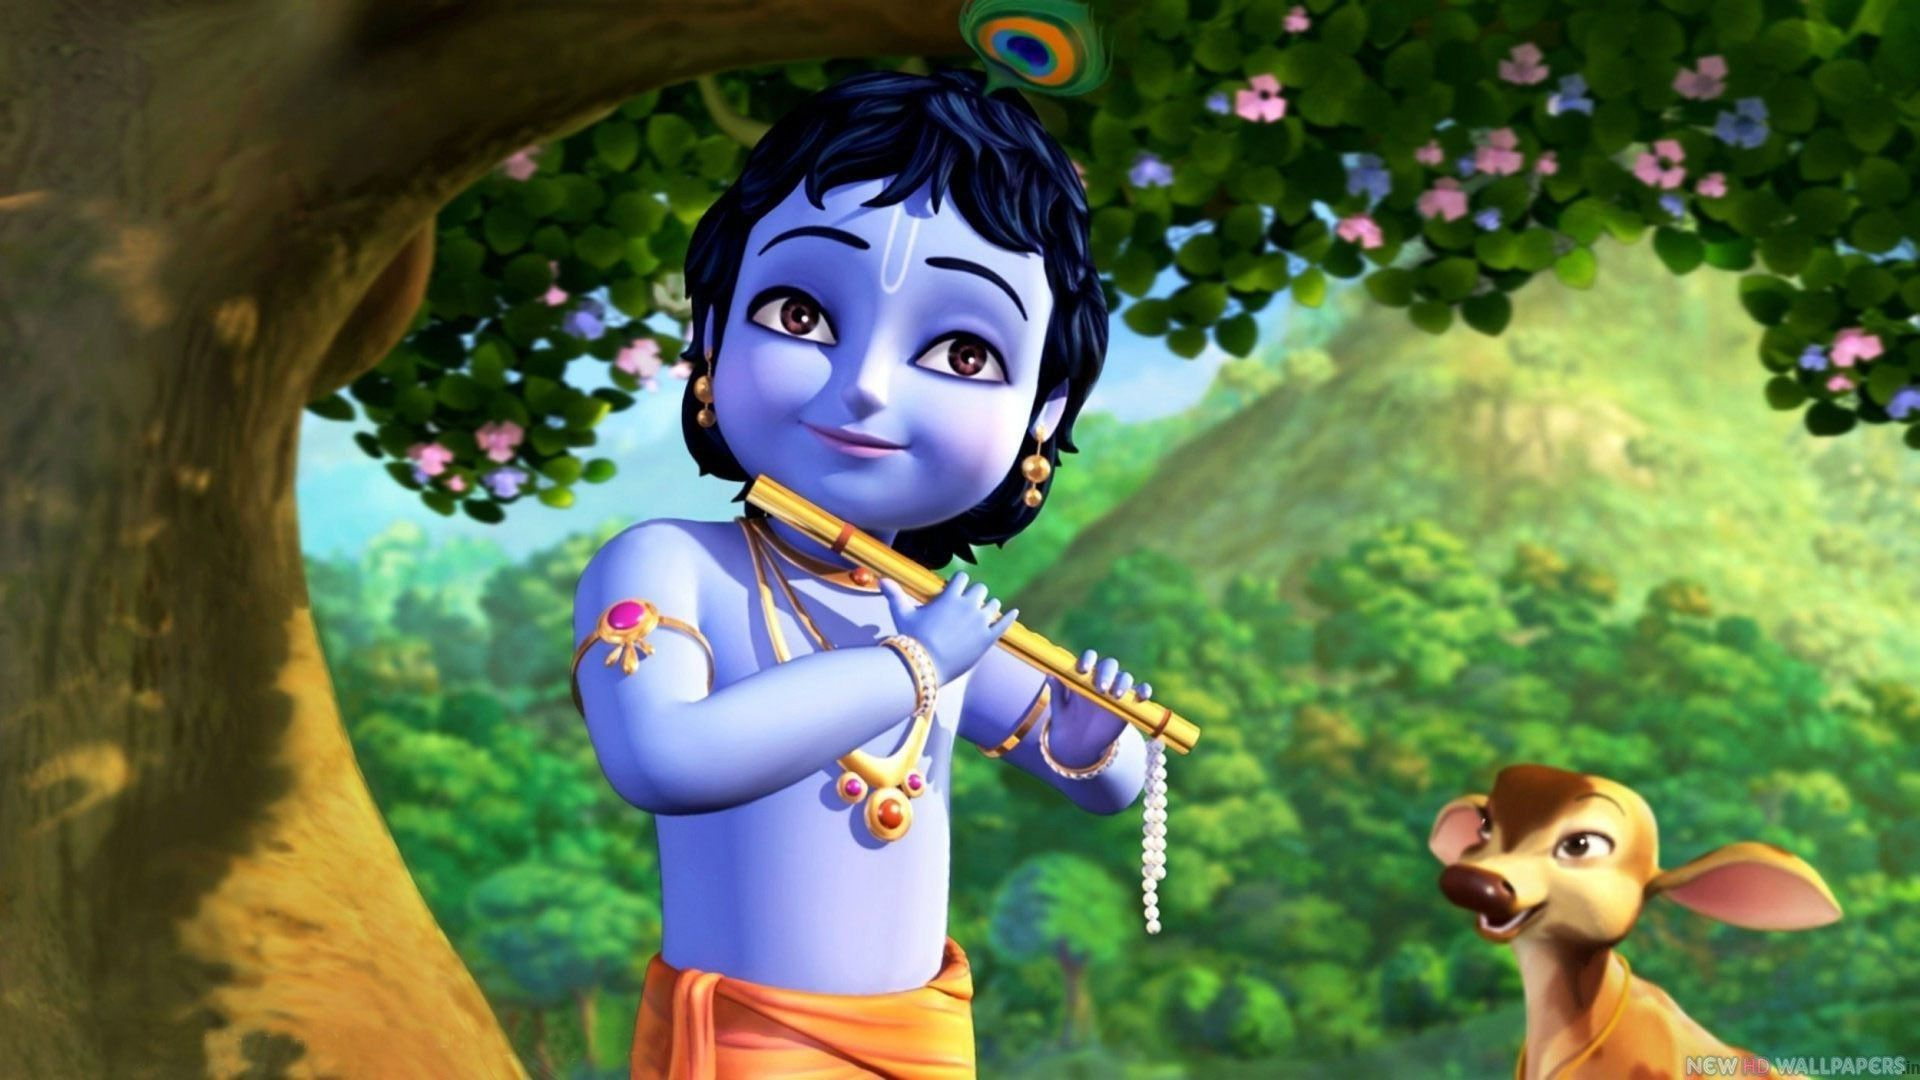 17 Best Ideas About Little Krishna On Pinterest Krishna Krishna Cartoons Krishna Cartoon Wallpaper Hd Lord Krishna Wallpapers